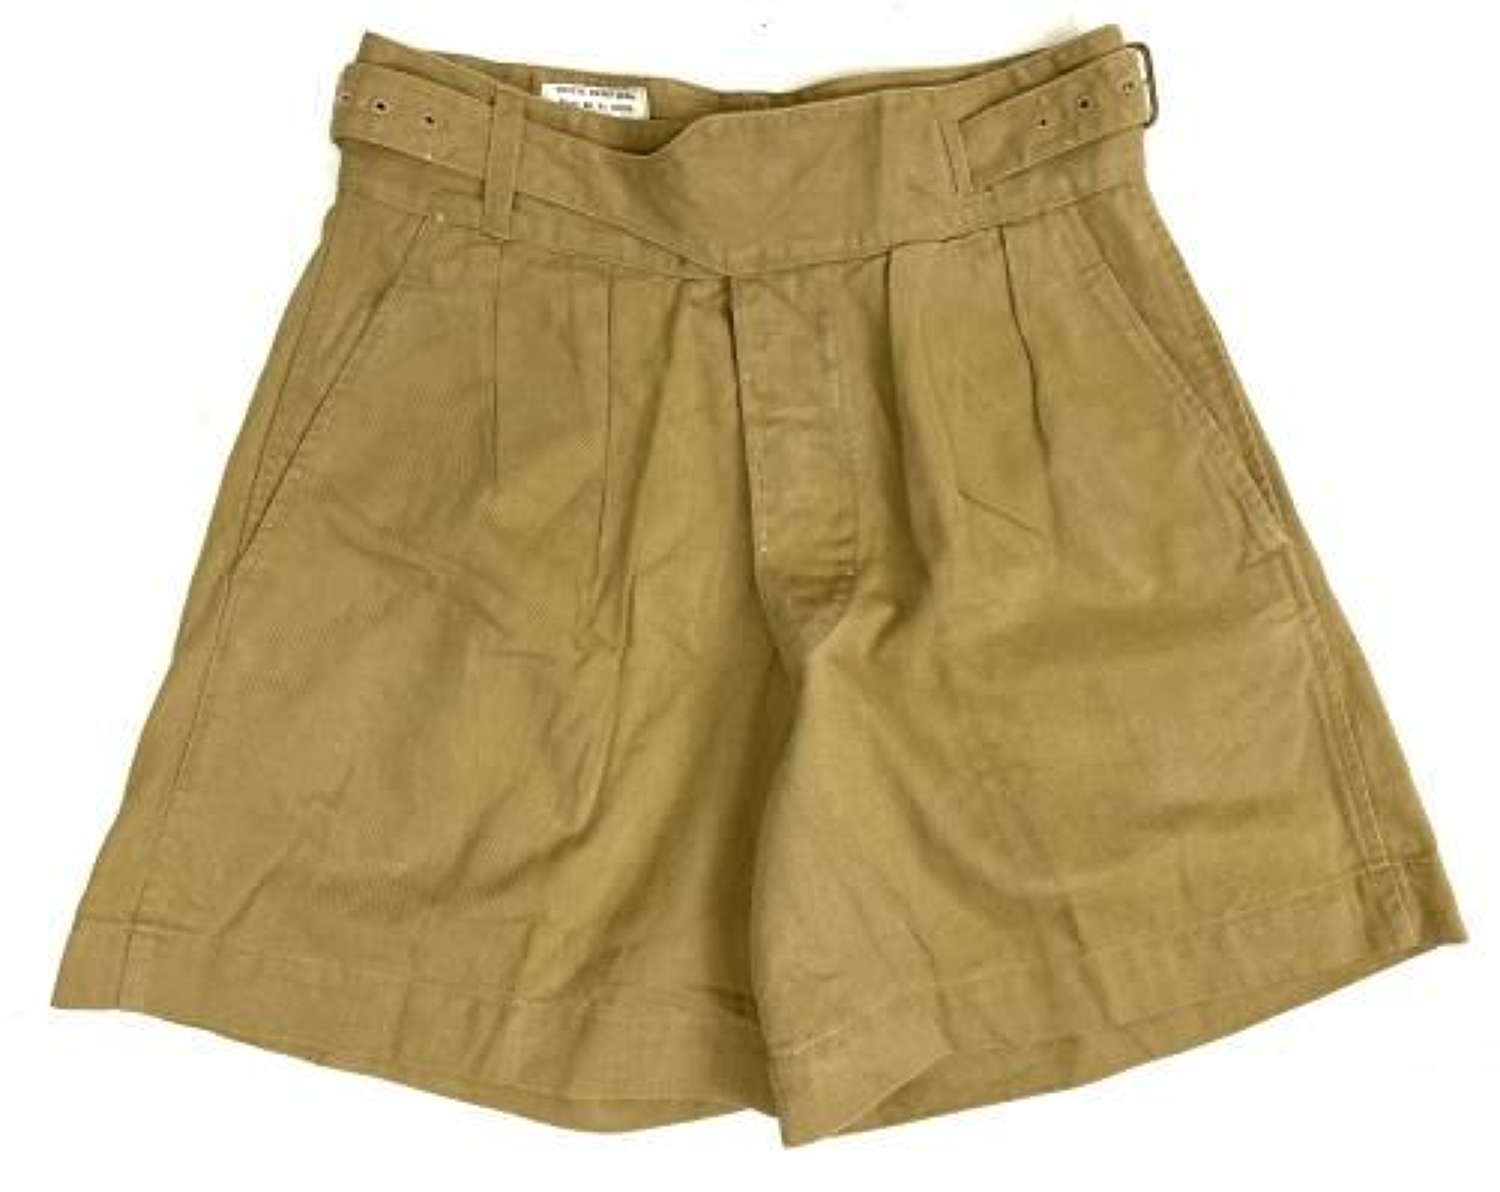 Original 1965 Dated Khaki Drill Shorts - Size 5